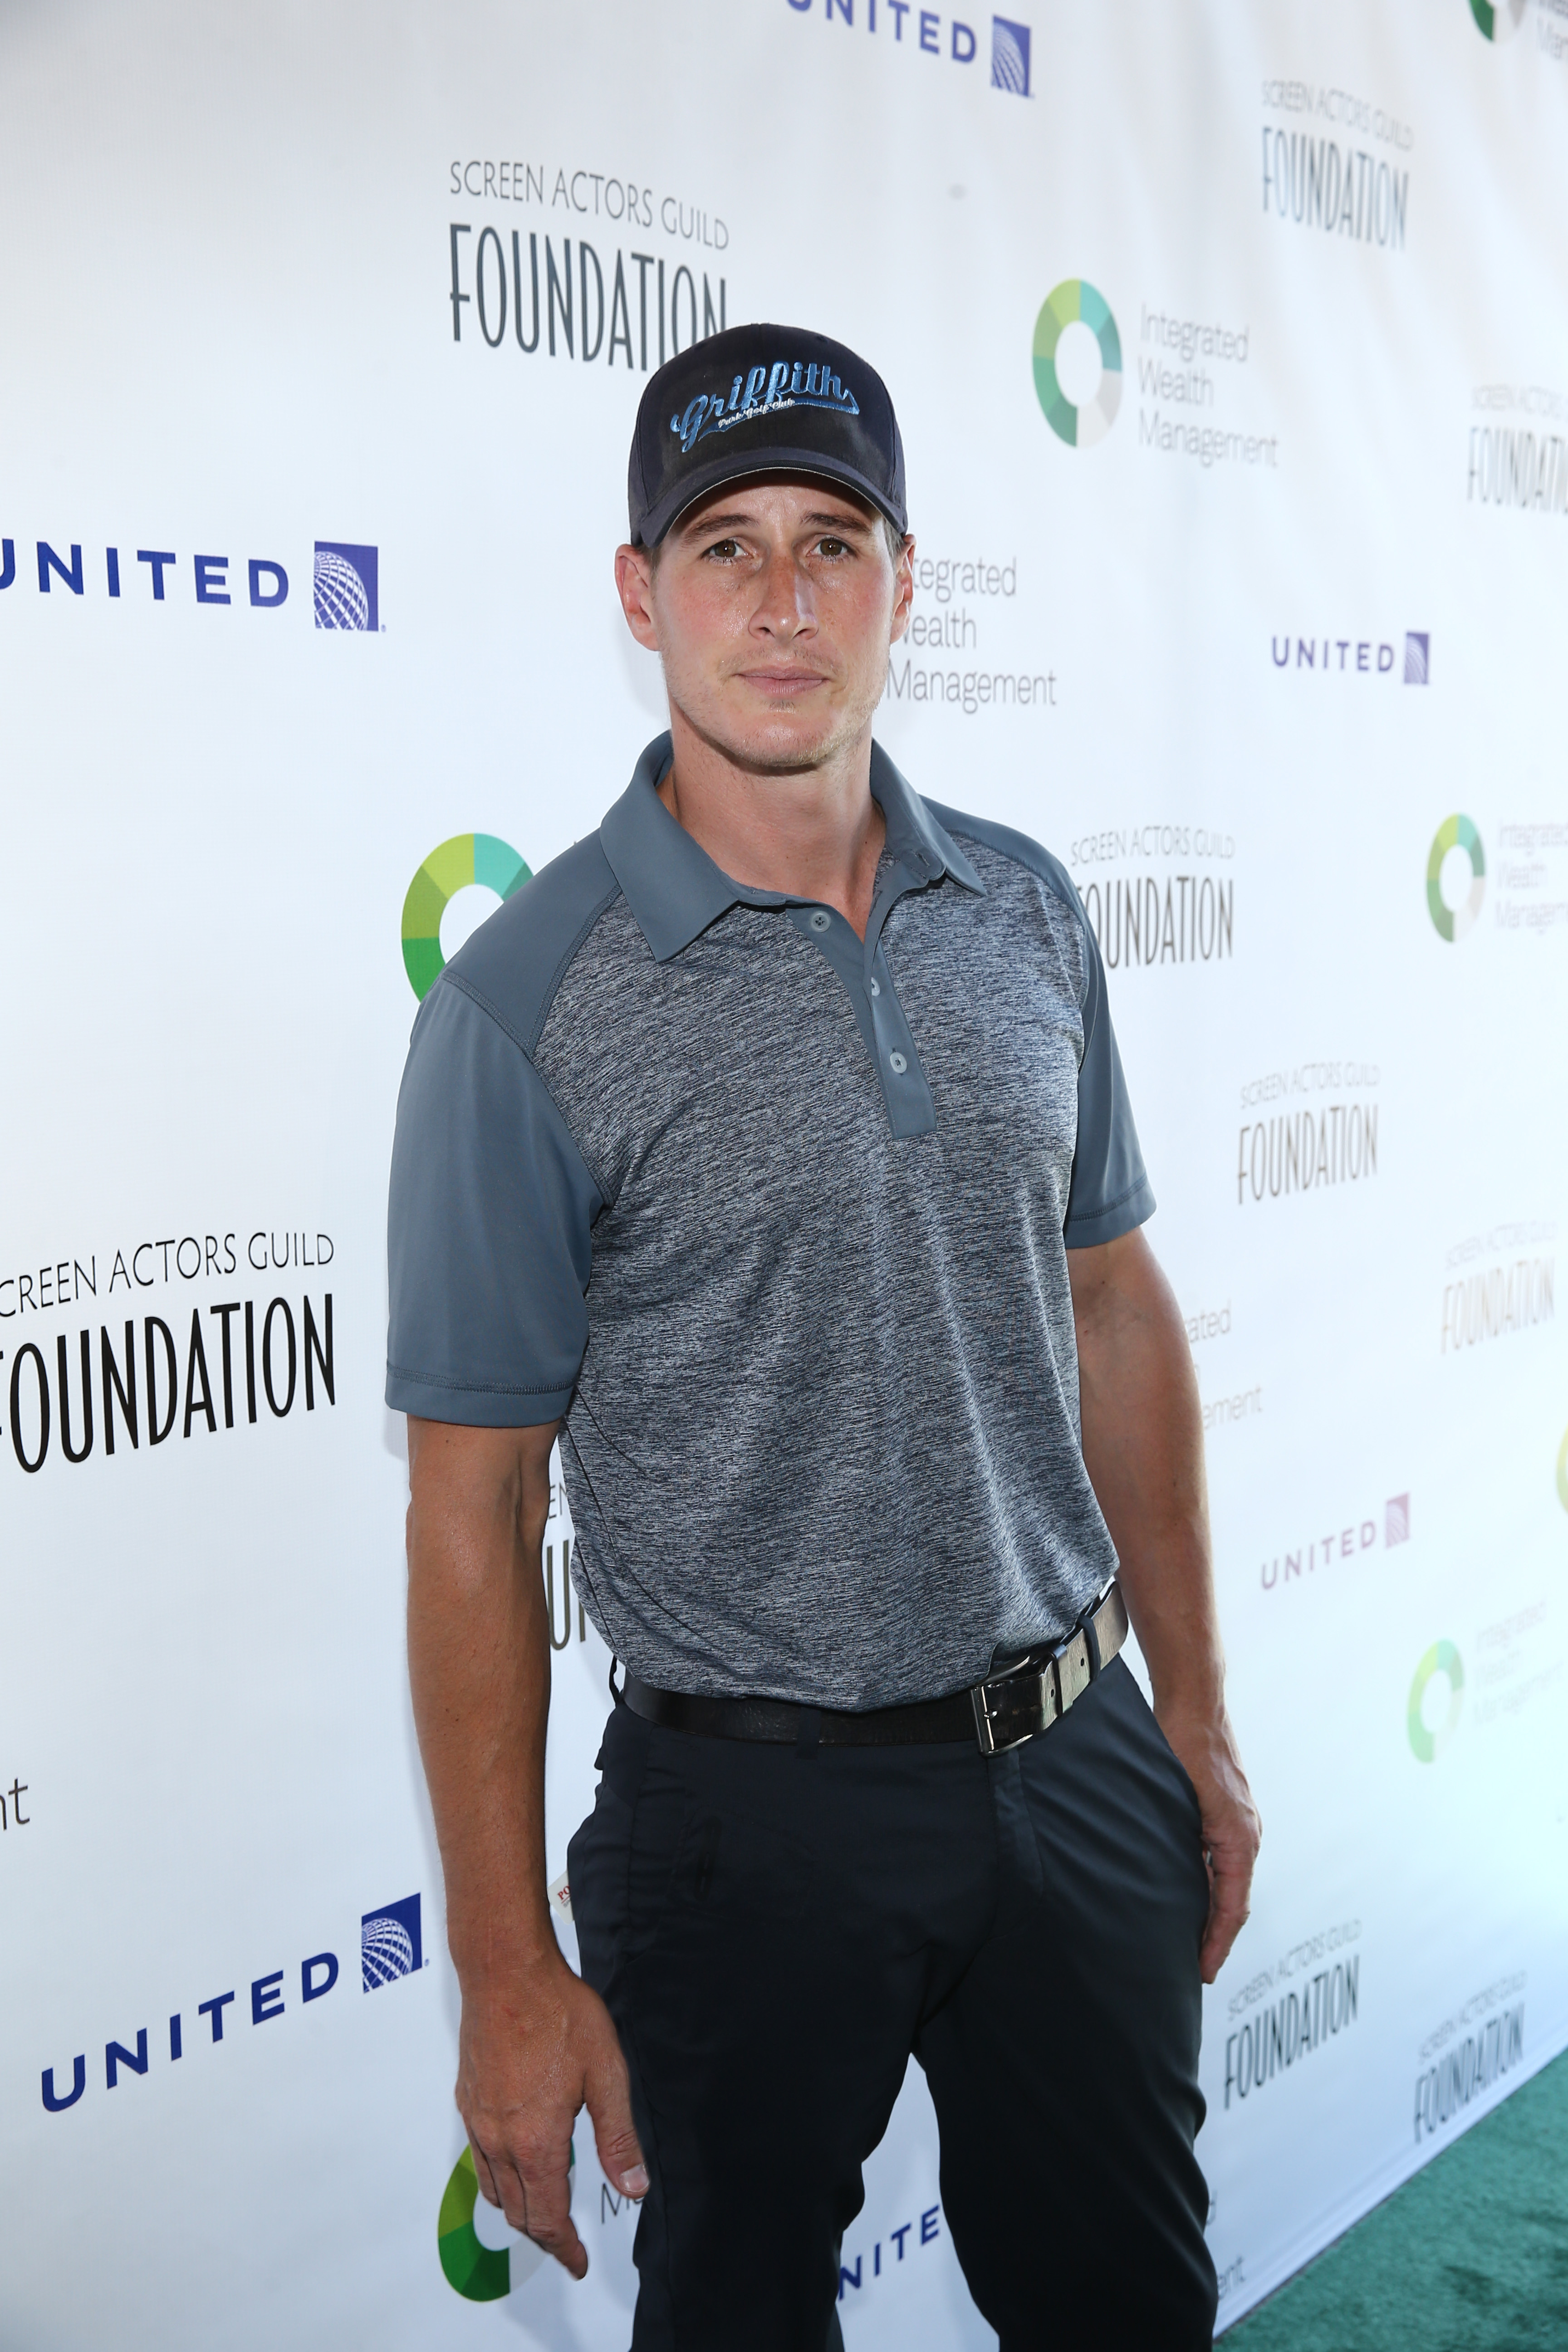 Host Brendan Fehr attends The Screen Actors Guild Foundation's 6th Annual Los Angeles Golf Classic on June 8, 2015 in Burbank, California. (Photo by Mark Davis/Getty Images for The Screen Actors Guild Foundation)